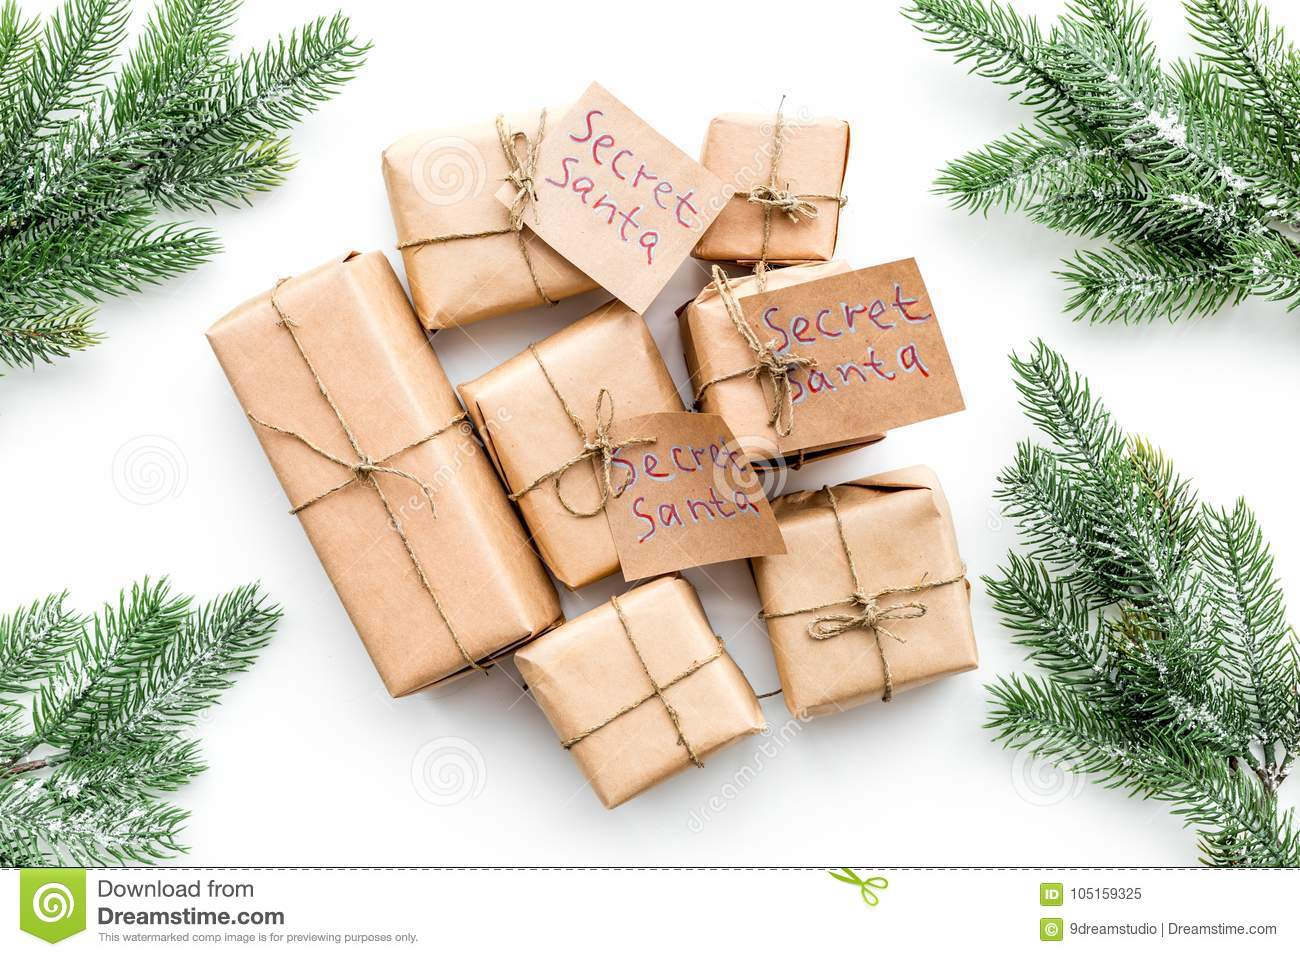 Secret Santa Christmas Game. Wrapped Gift Boxes With Handwritten ...